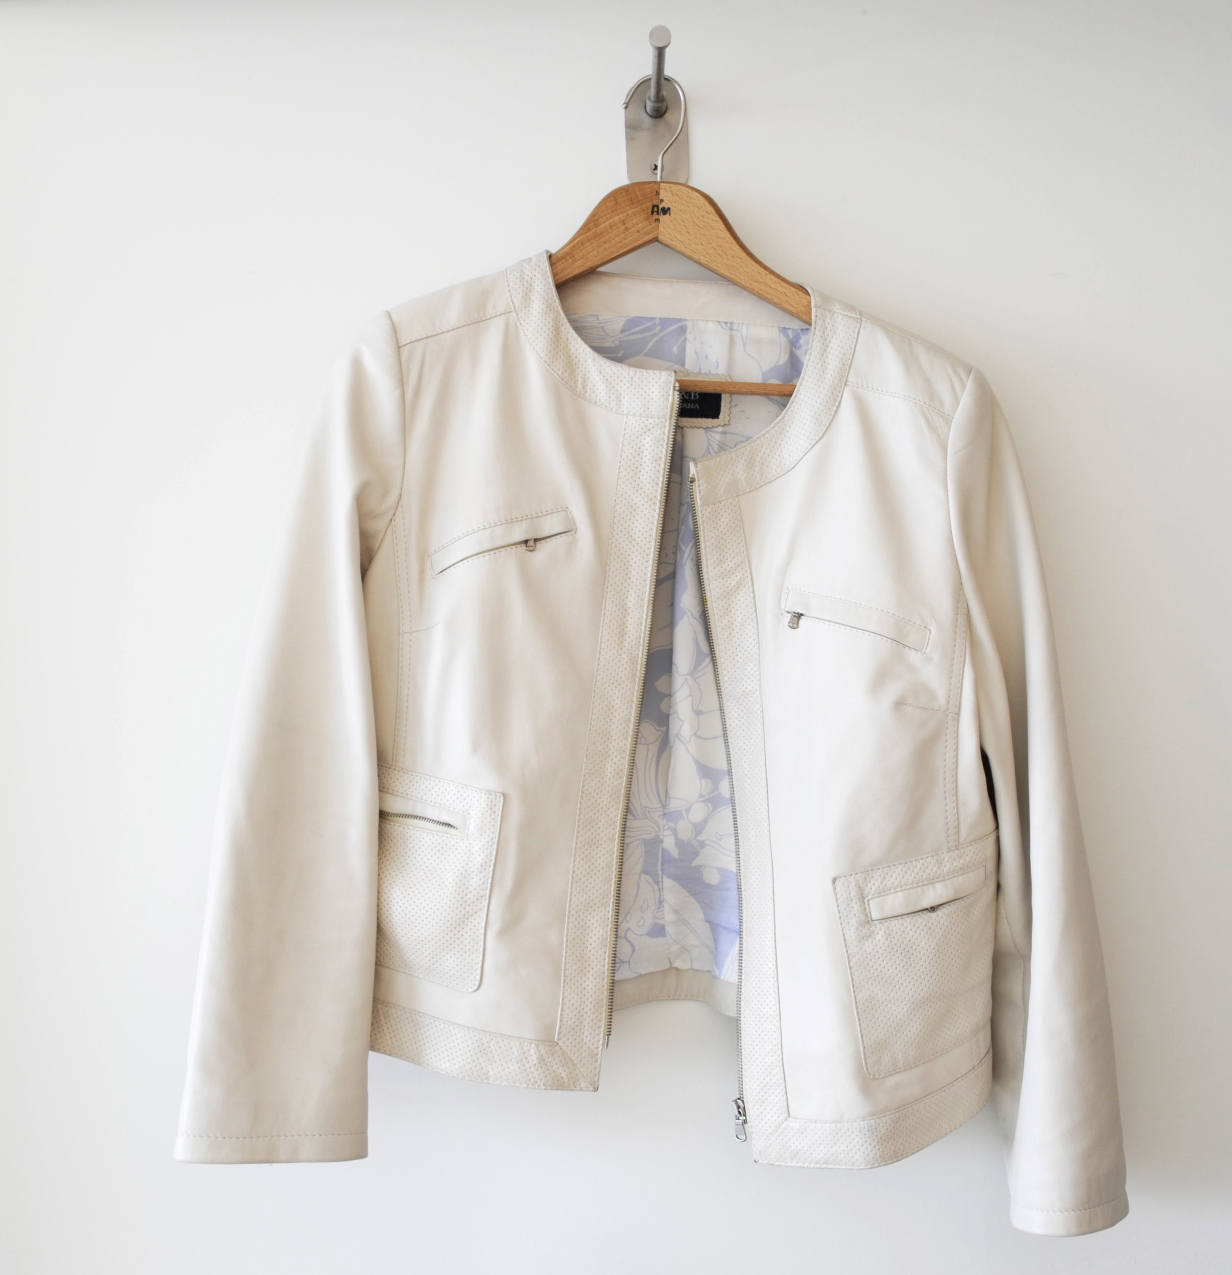 I did hang a beige leather jacket, which blended perfectly into the scene.